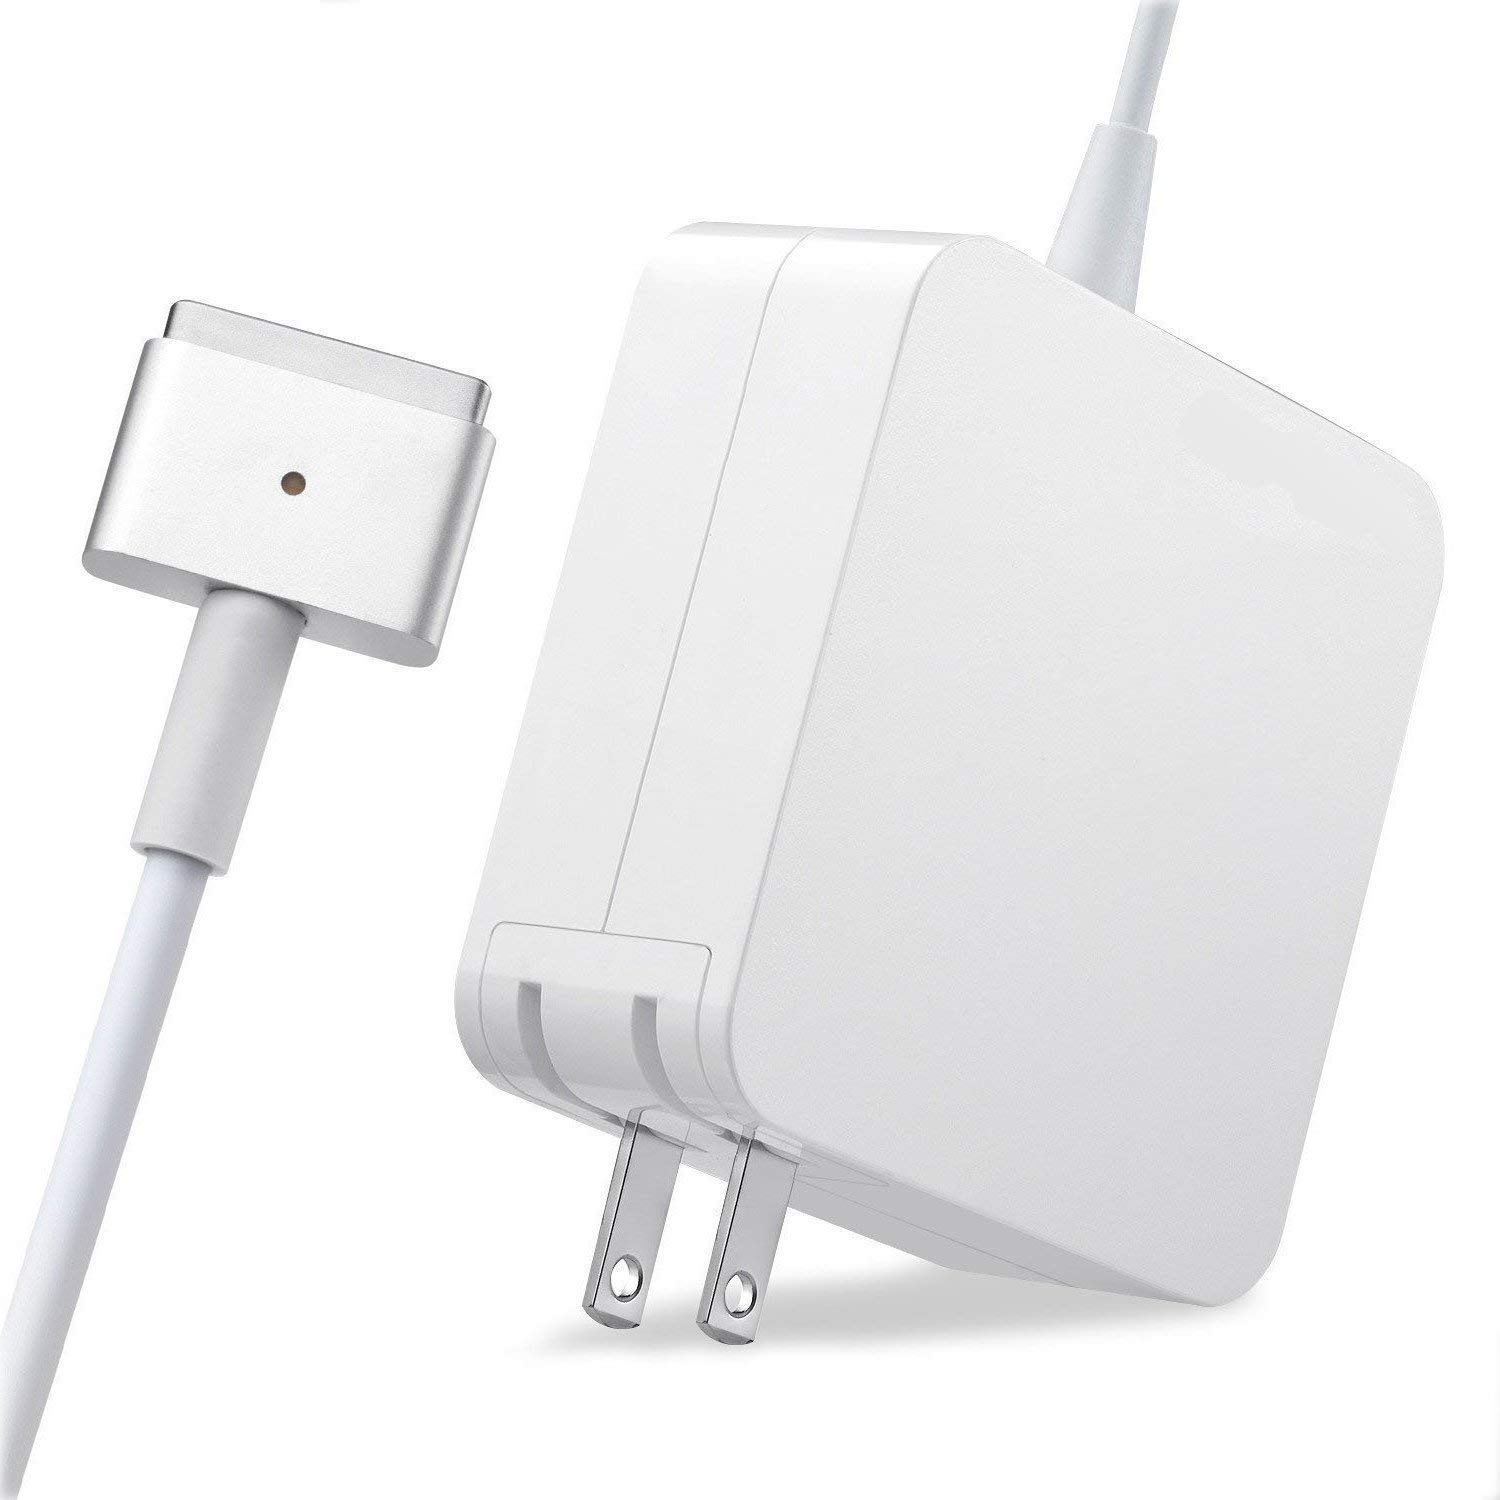 GSNOW Mac Book Pro Charger, AC 85W Magsafe 2 Power Adapter for MacBook Pro 17/15/13 inch (Made After Mid 2012)